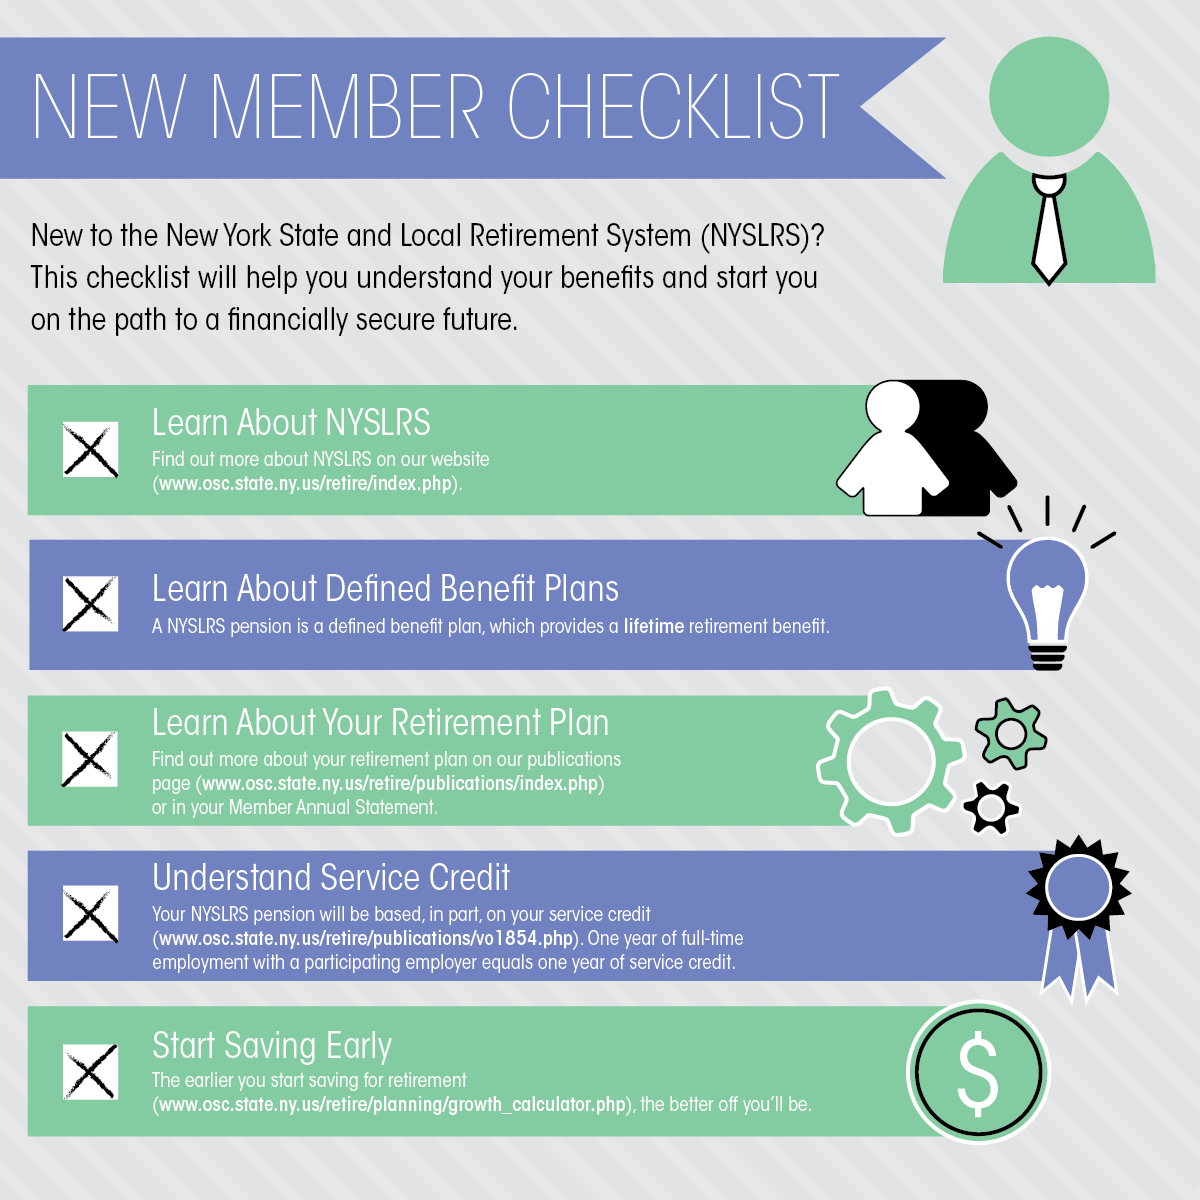 New Members Checklist